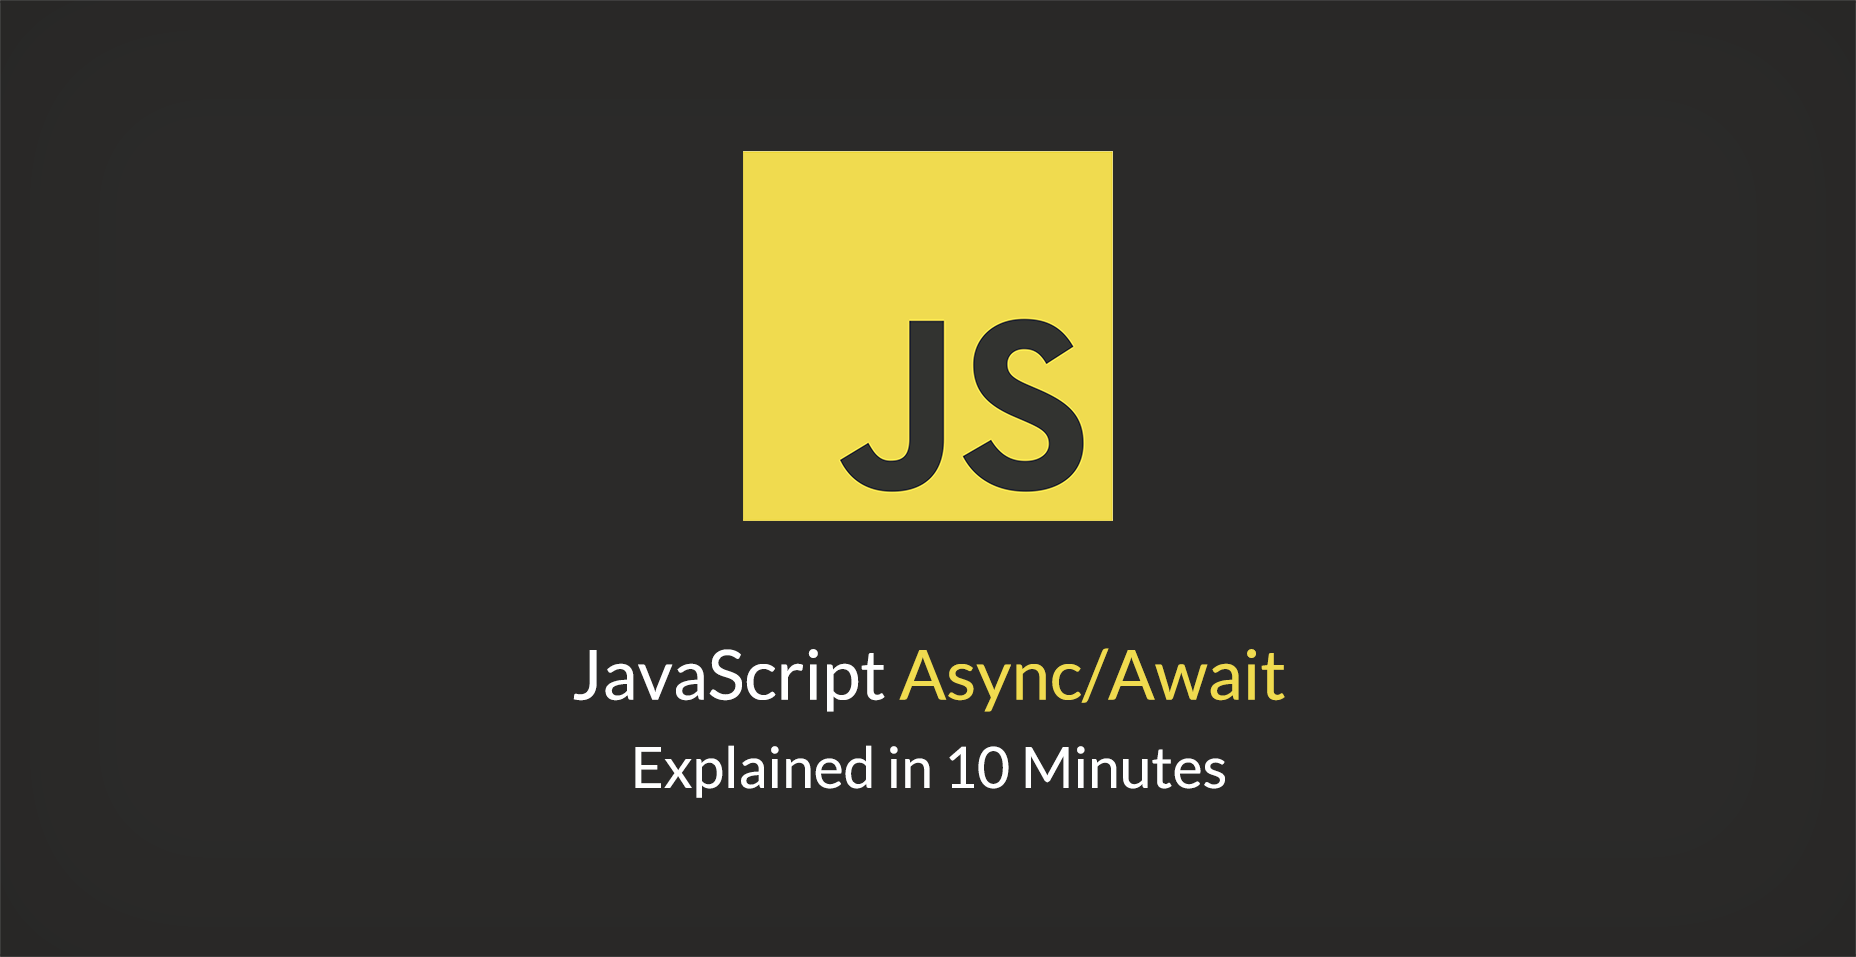 JavaScript Async/Await Explained in 10 Minutes